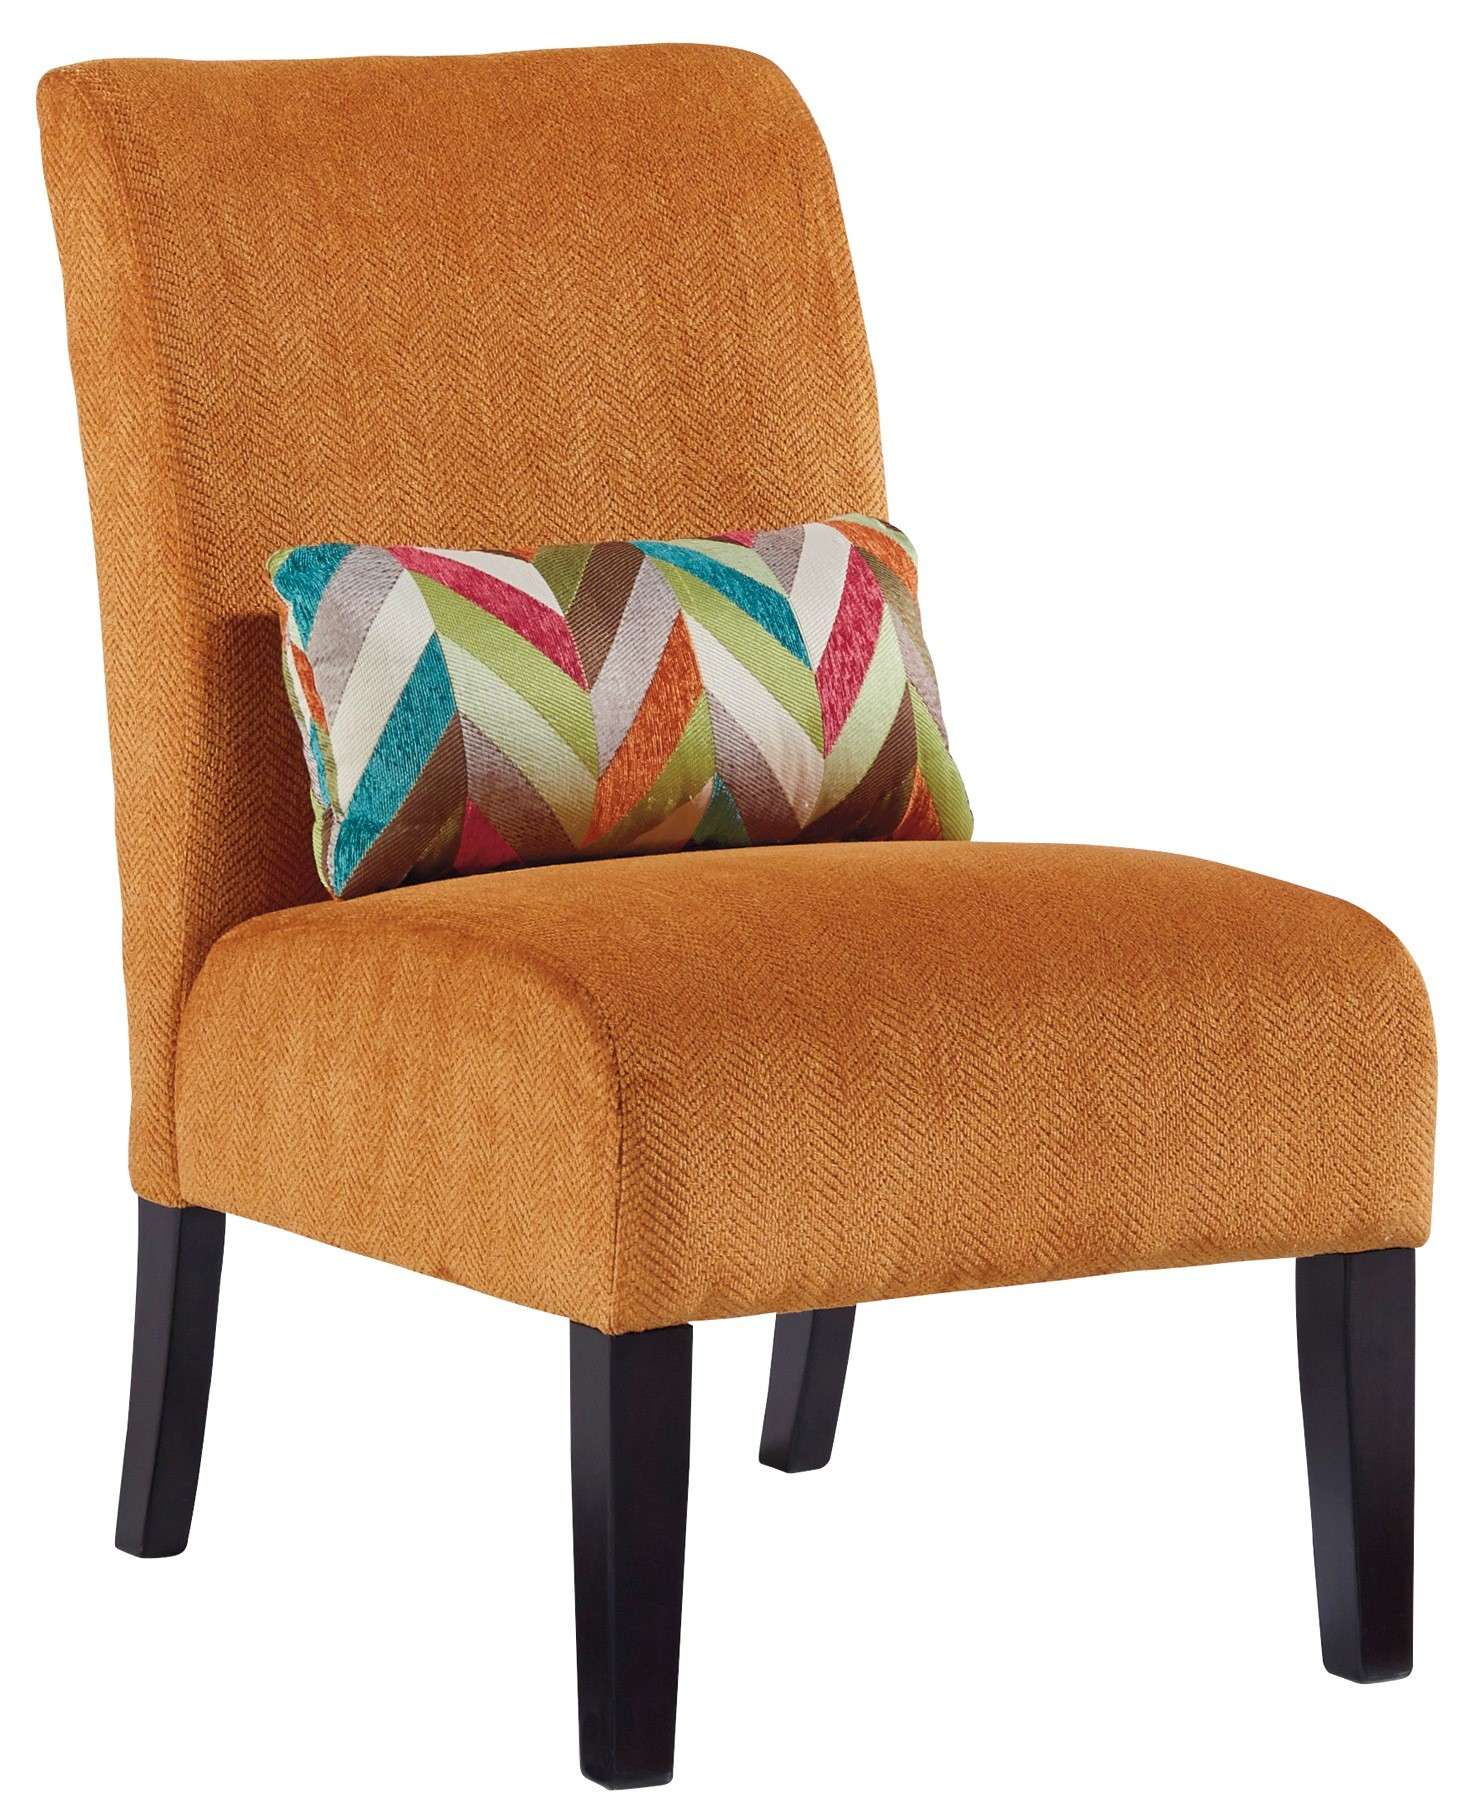 Orange Accent Chairs Annora Orange Accent Chair From Ashley 6160260 Coleman